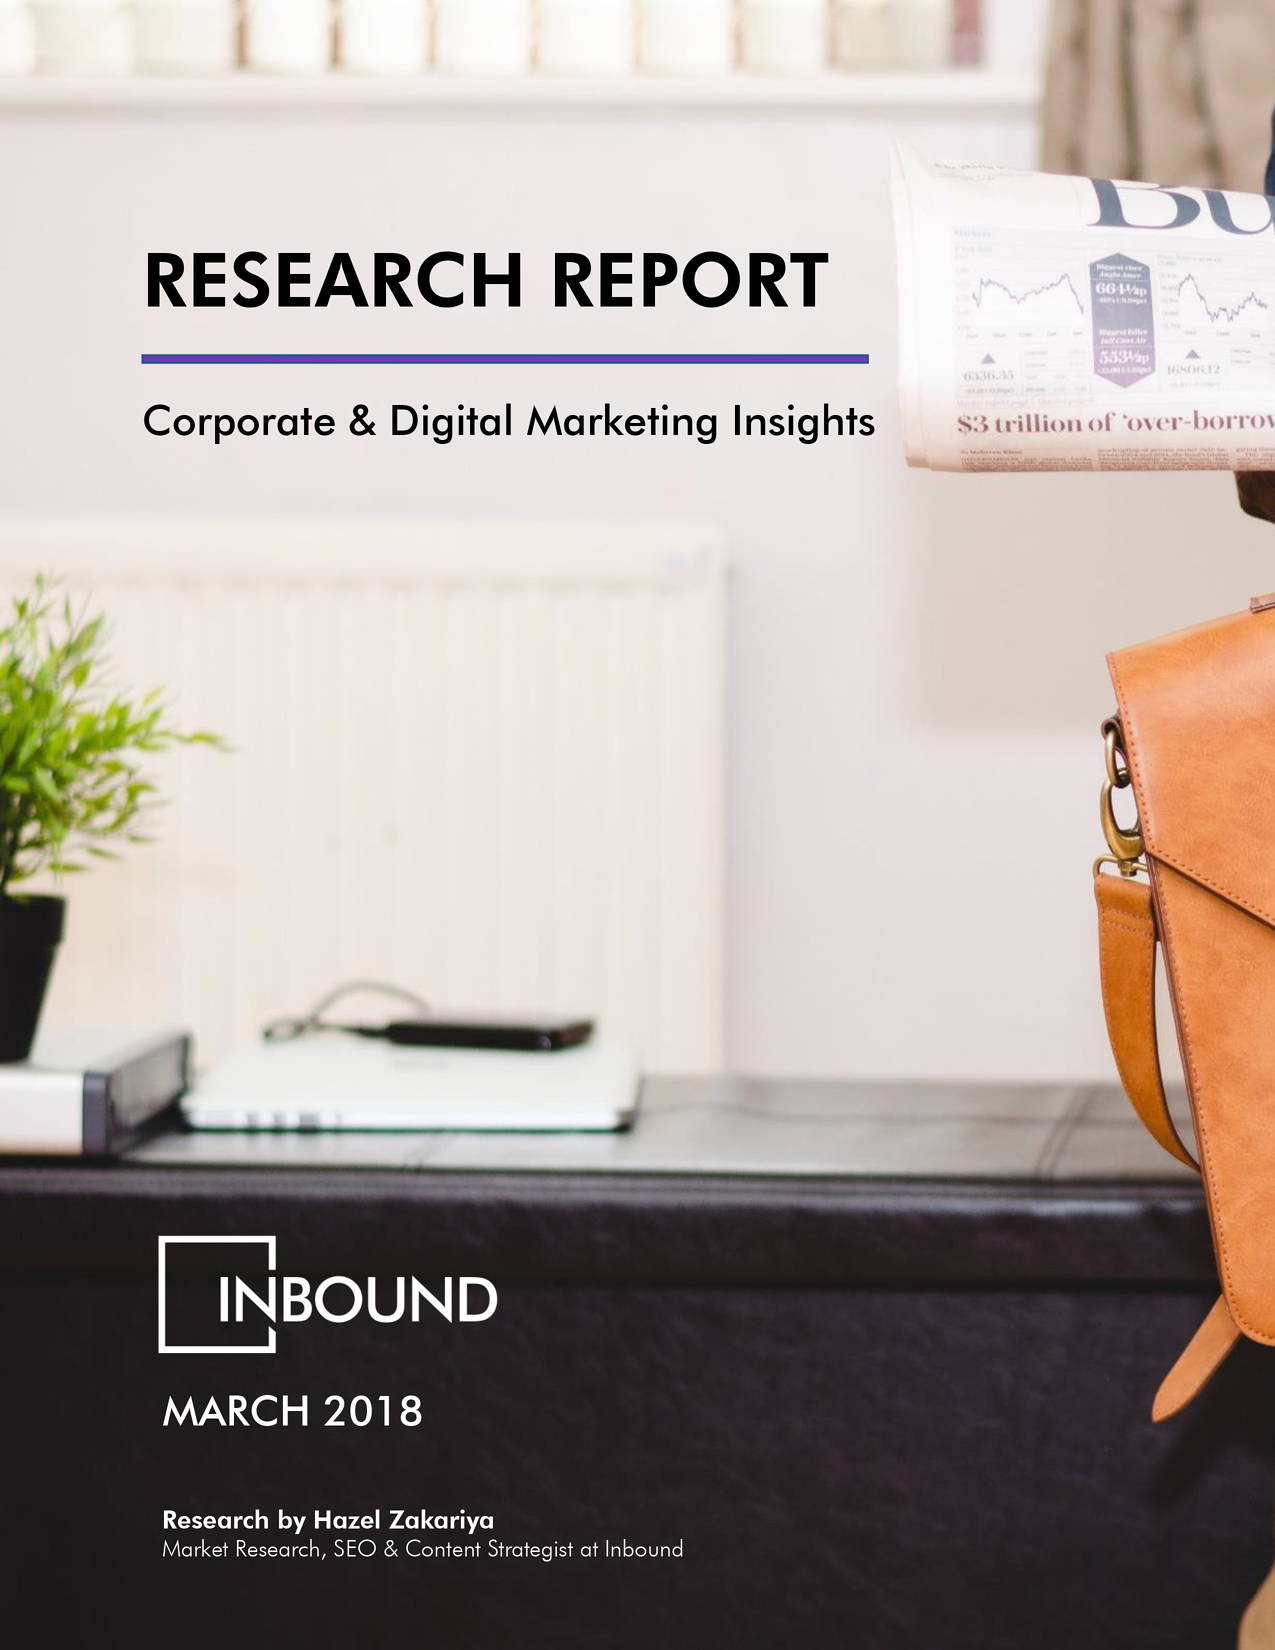 Inbound Market Research Report Cover.png